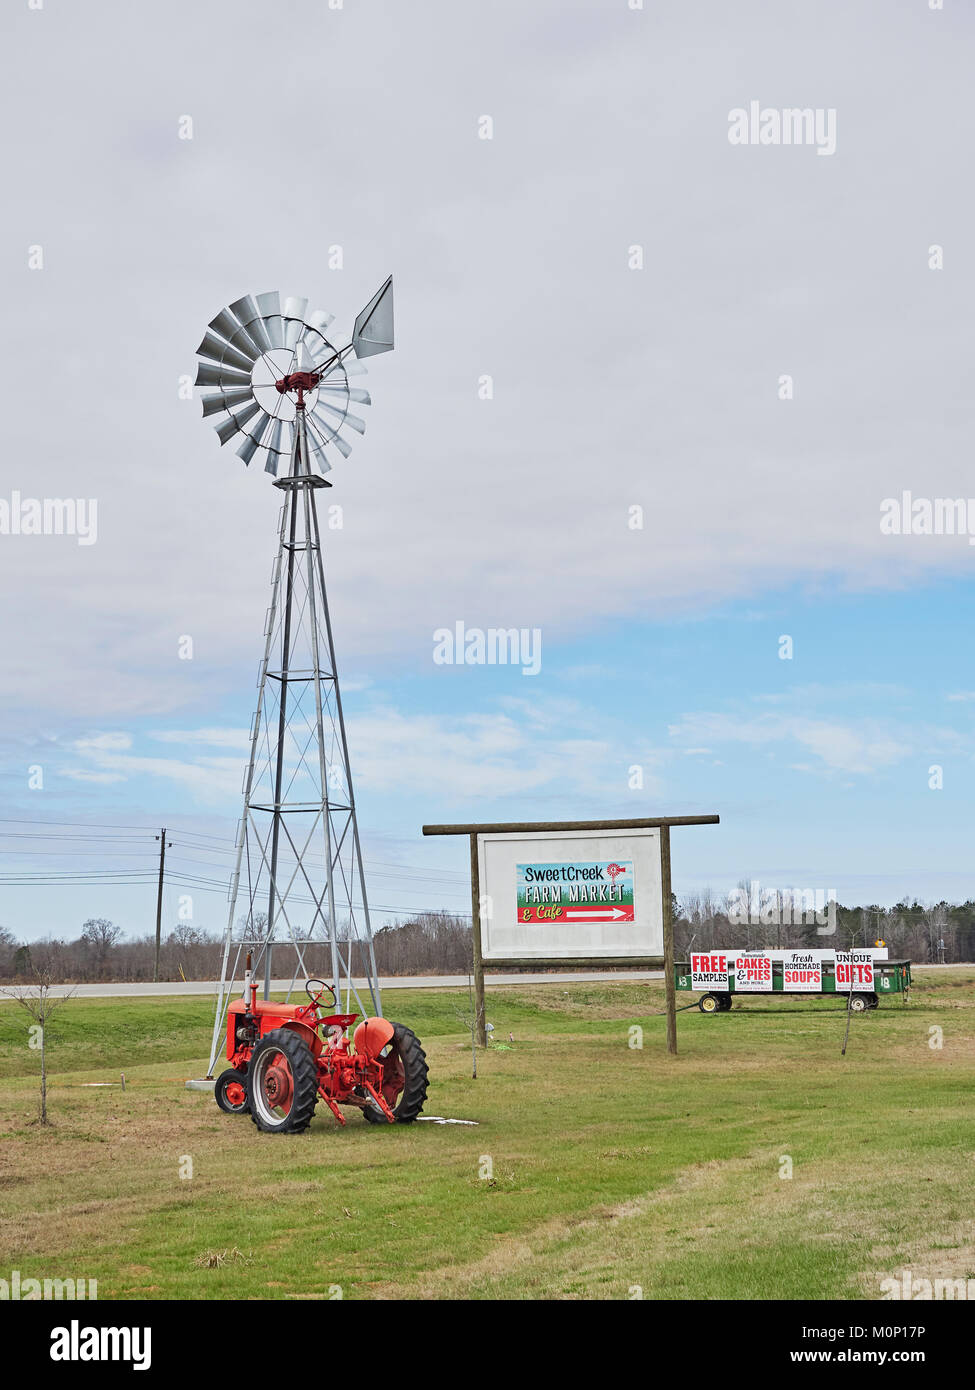 Roadside signs, a red tractor and a windmill water pump advertise a Farm Market in rural Pike Road Alabama, United - Stock Image